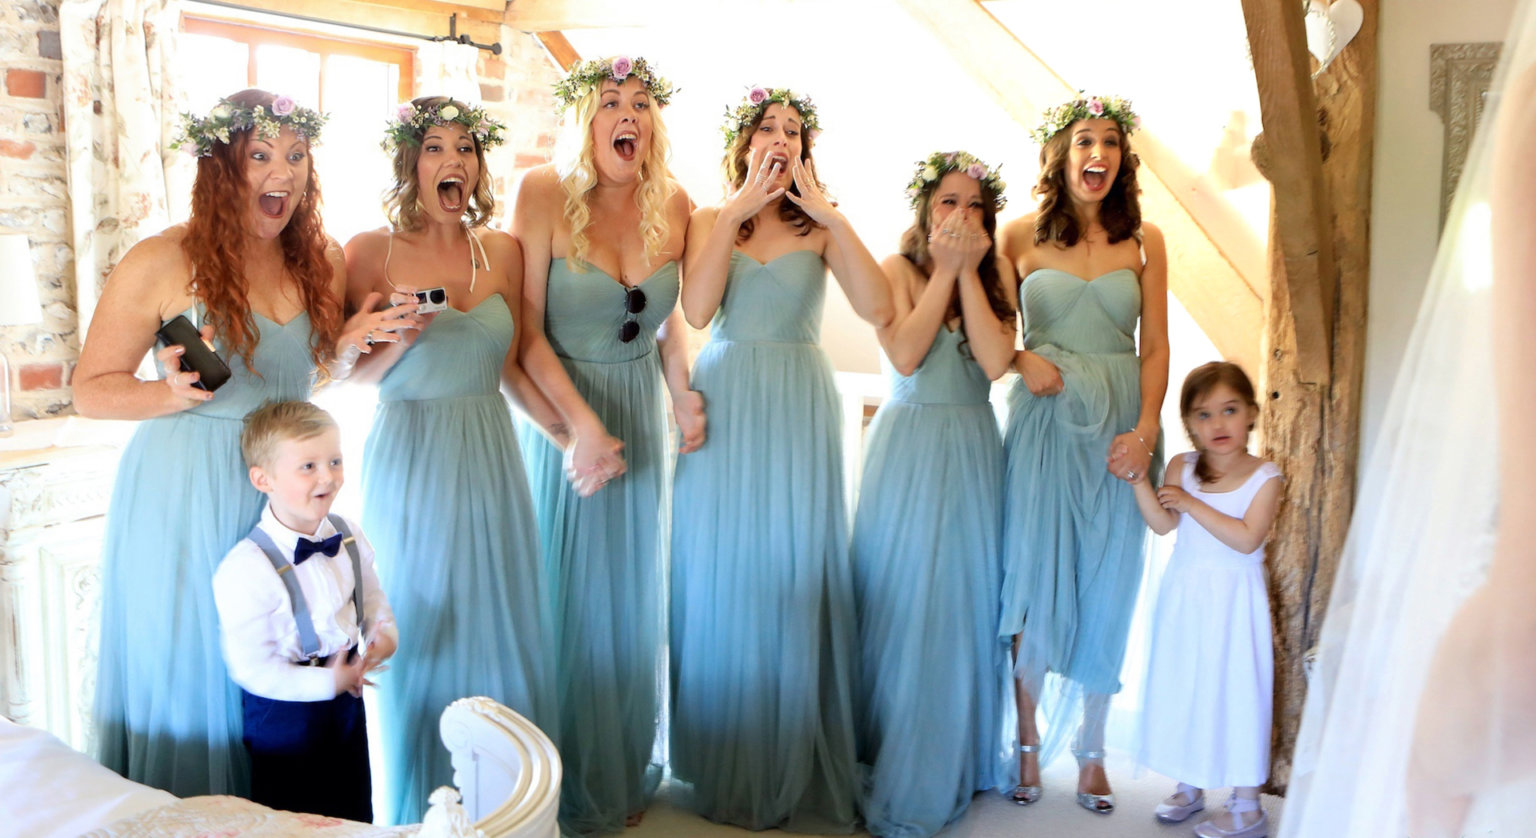 candid wedding photography packages